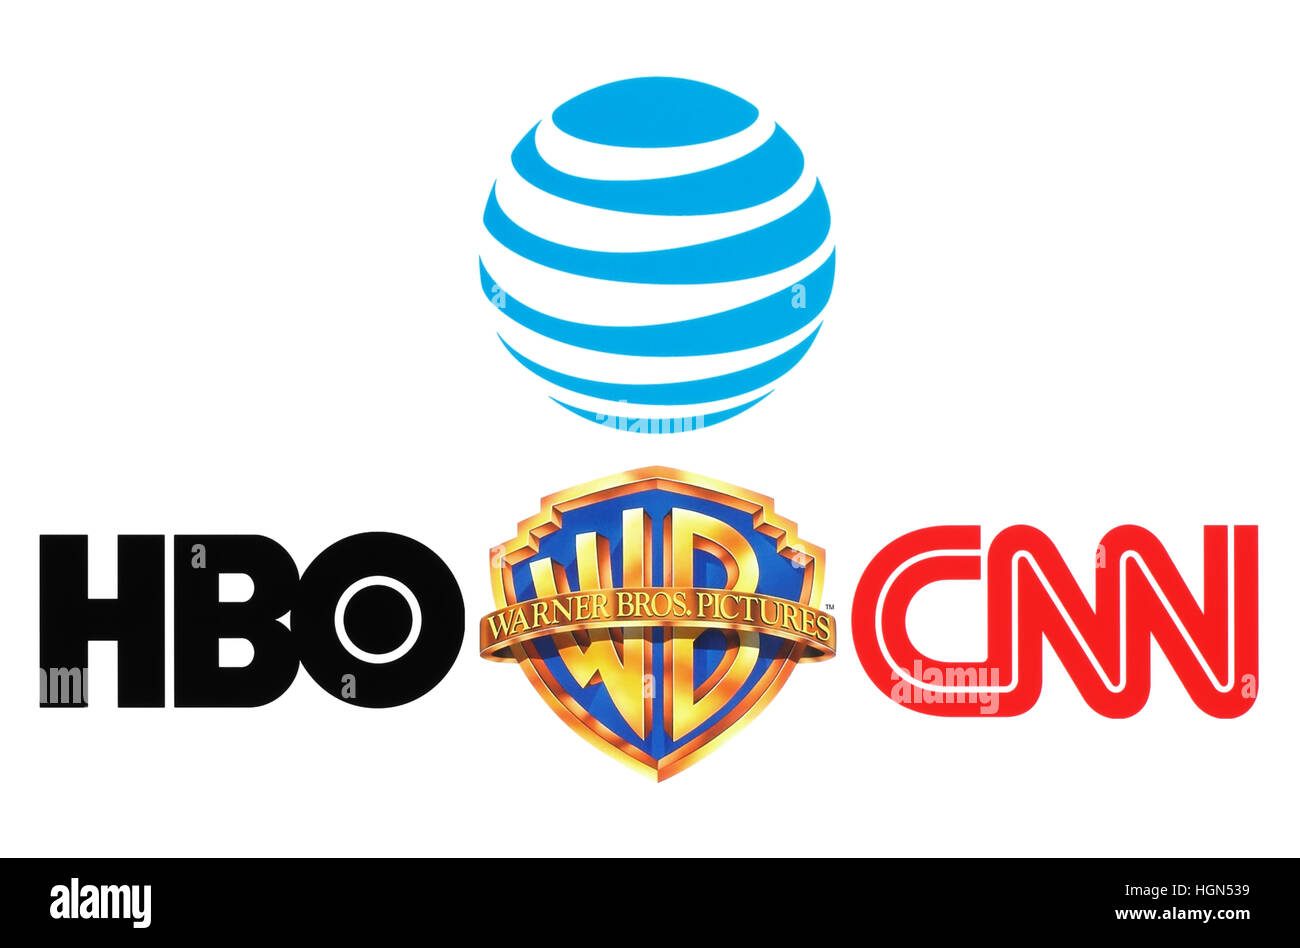 Kiev ukraine october 26 2016 collection of popular logos of kiev ukraine october 26 2016 collection of popular logos of att inc warner bros hbo and cnn on white paper buycottarizona